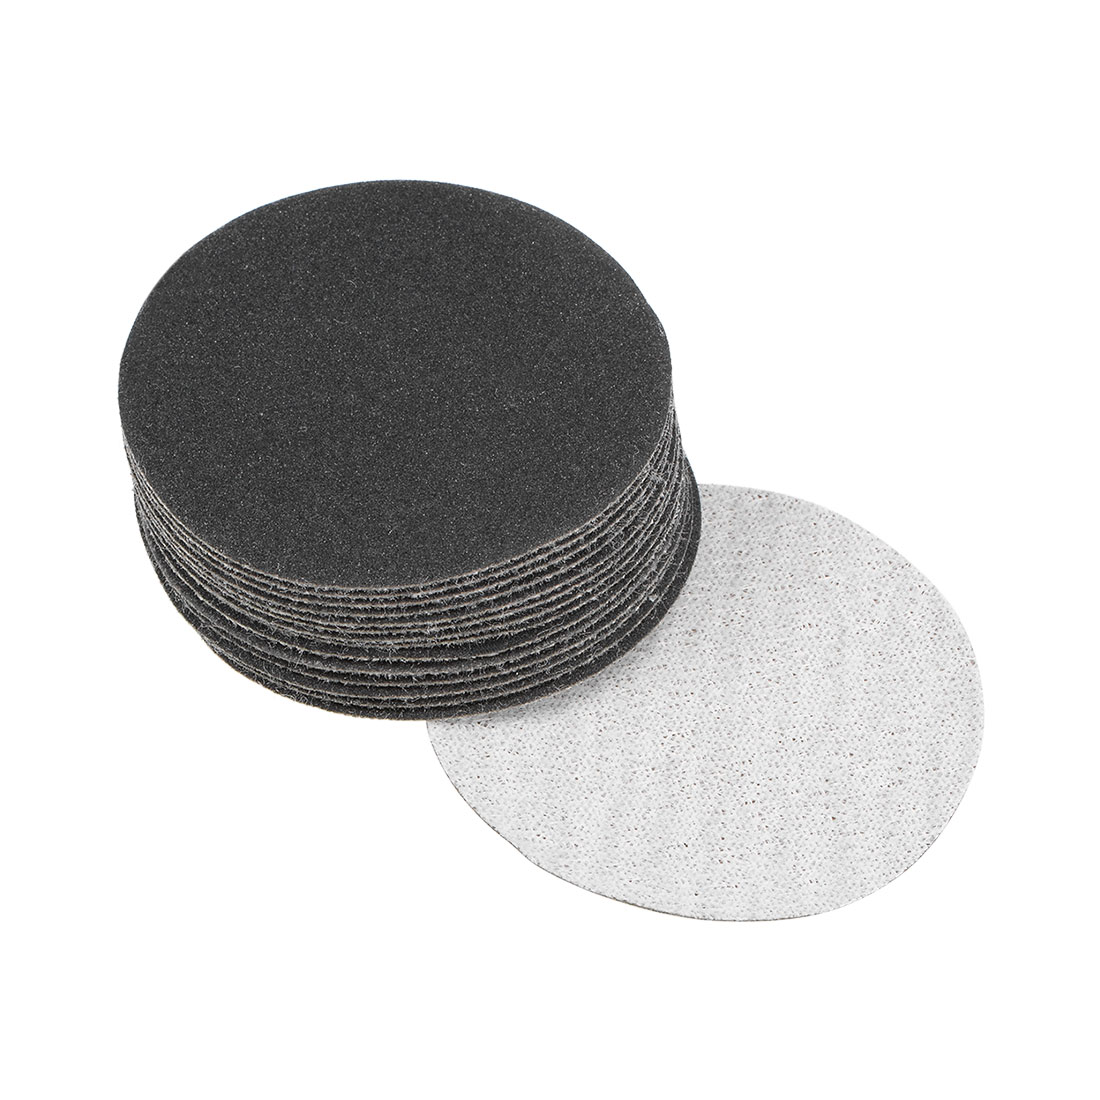 2 inch Wet Dry Discs 240 Grit Hook and Loop Sanding Disc Silicon Carbide 15pcs